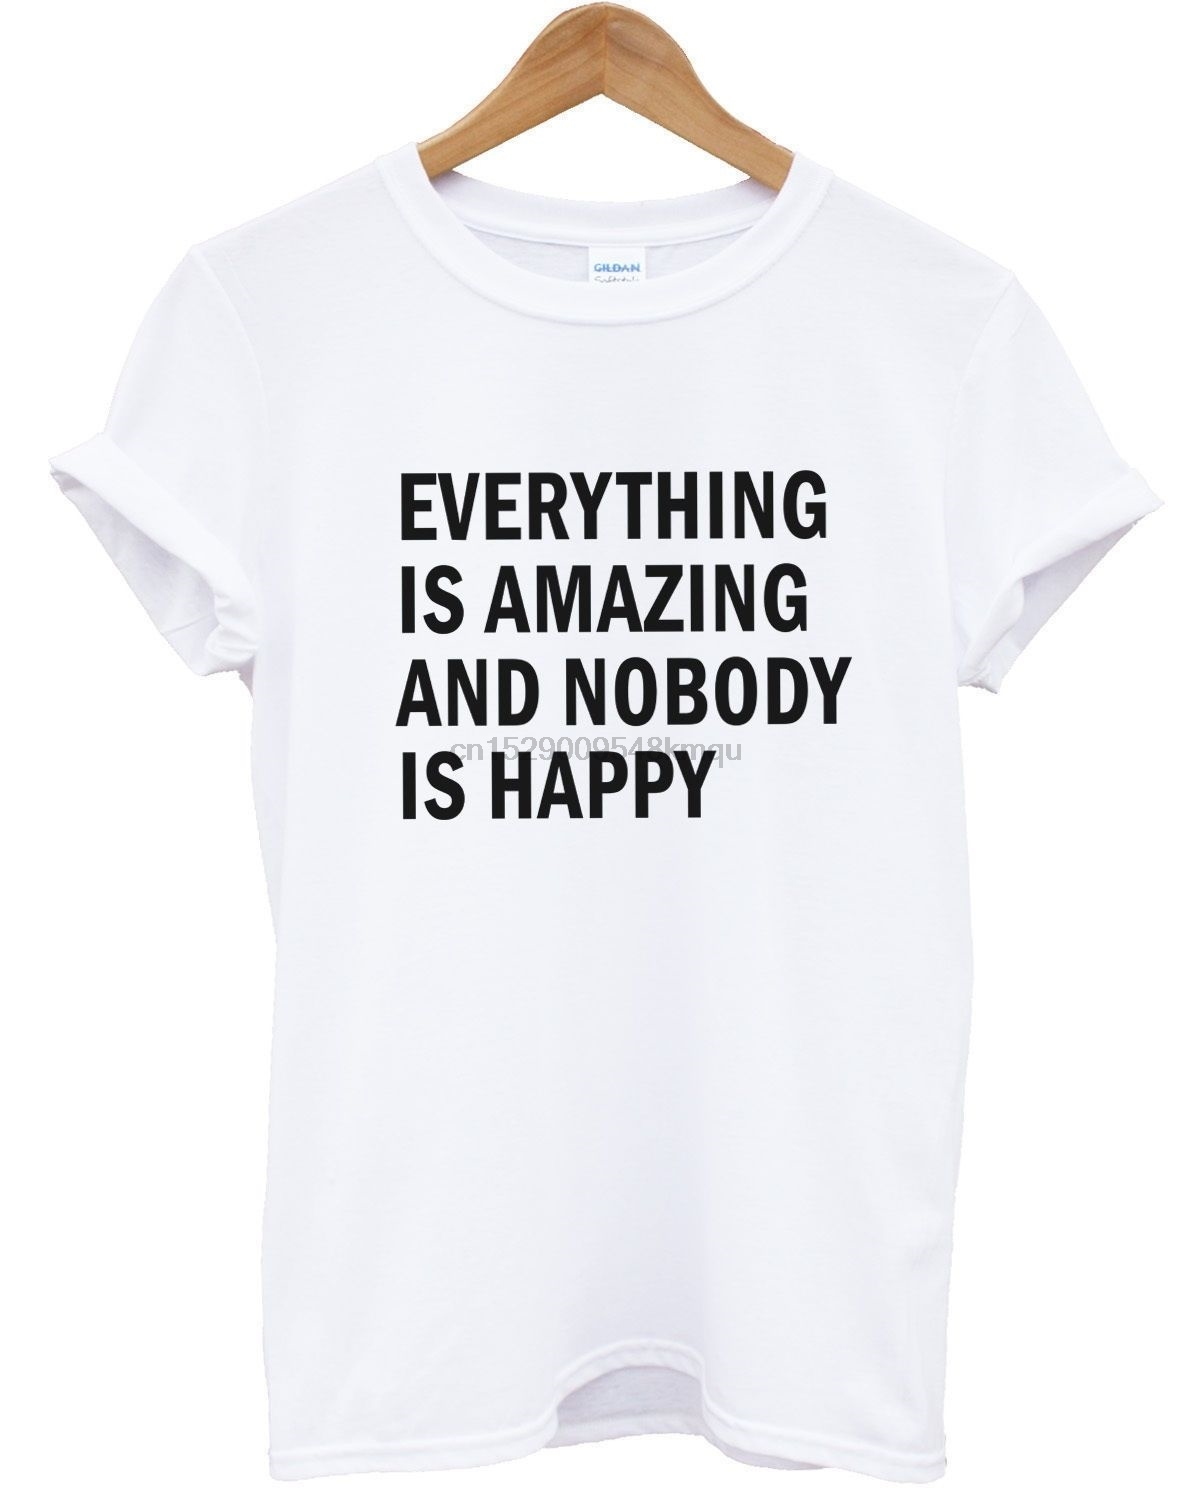 EVERYTHING IS AMAZING AND NOBODY IS HAPPY T SHIRT TOP HIPSTER MEN WOMEN BLOG Fashion Style Men Tee100% Cotton Classic tee image